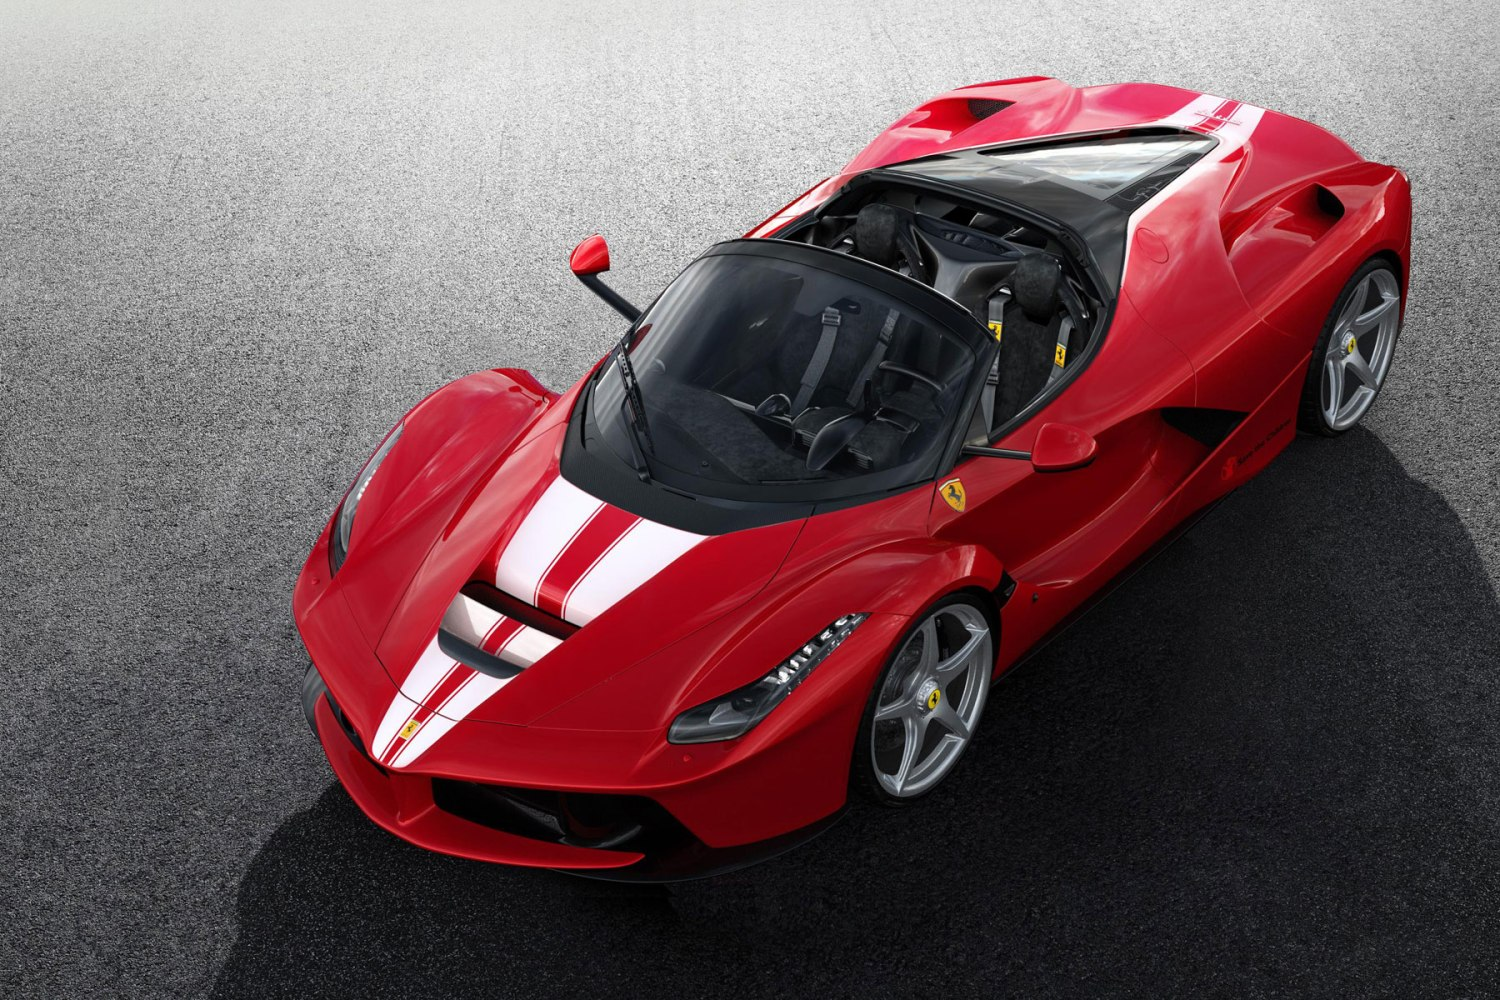 Ferrari LaFerrari Aperta – less than 3.0 seconds